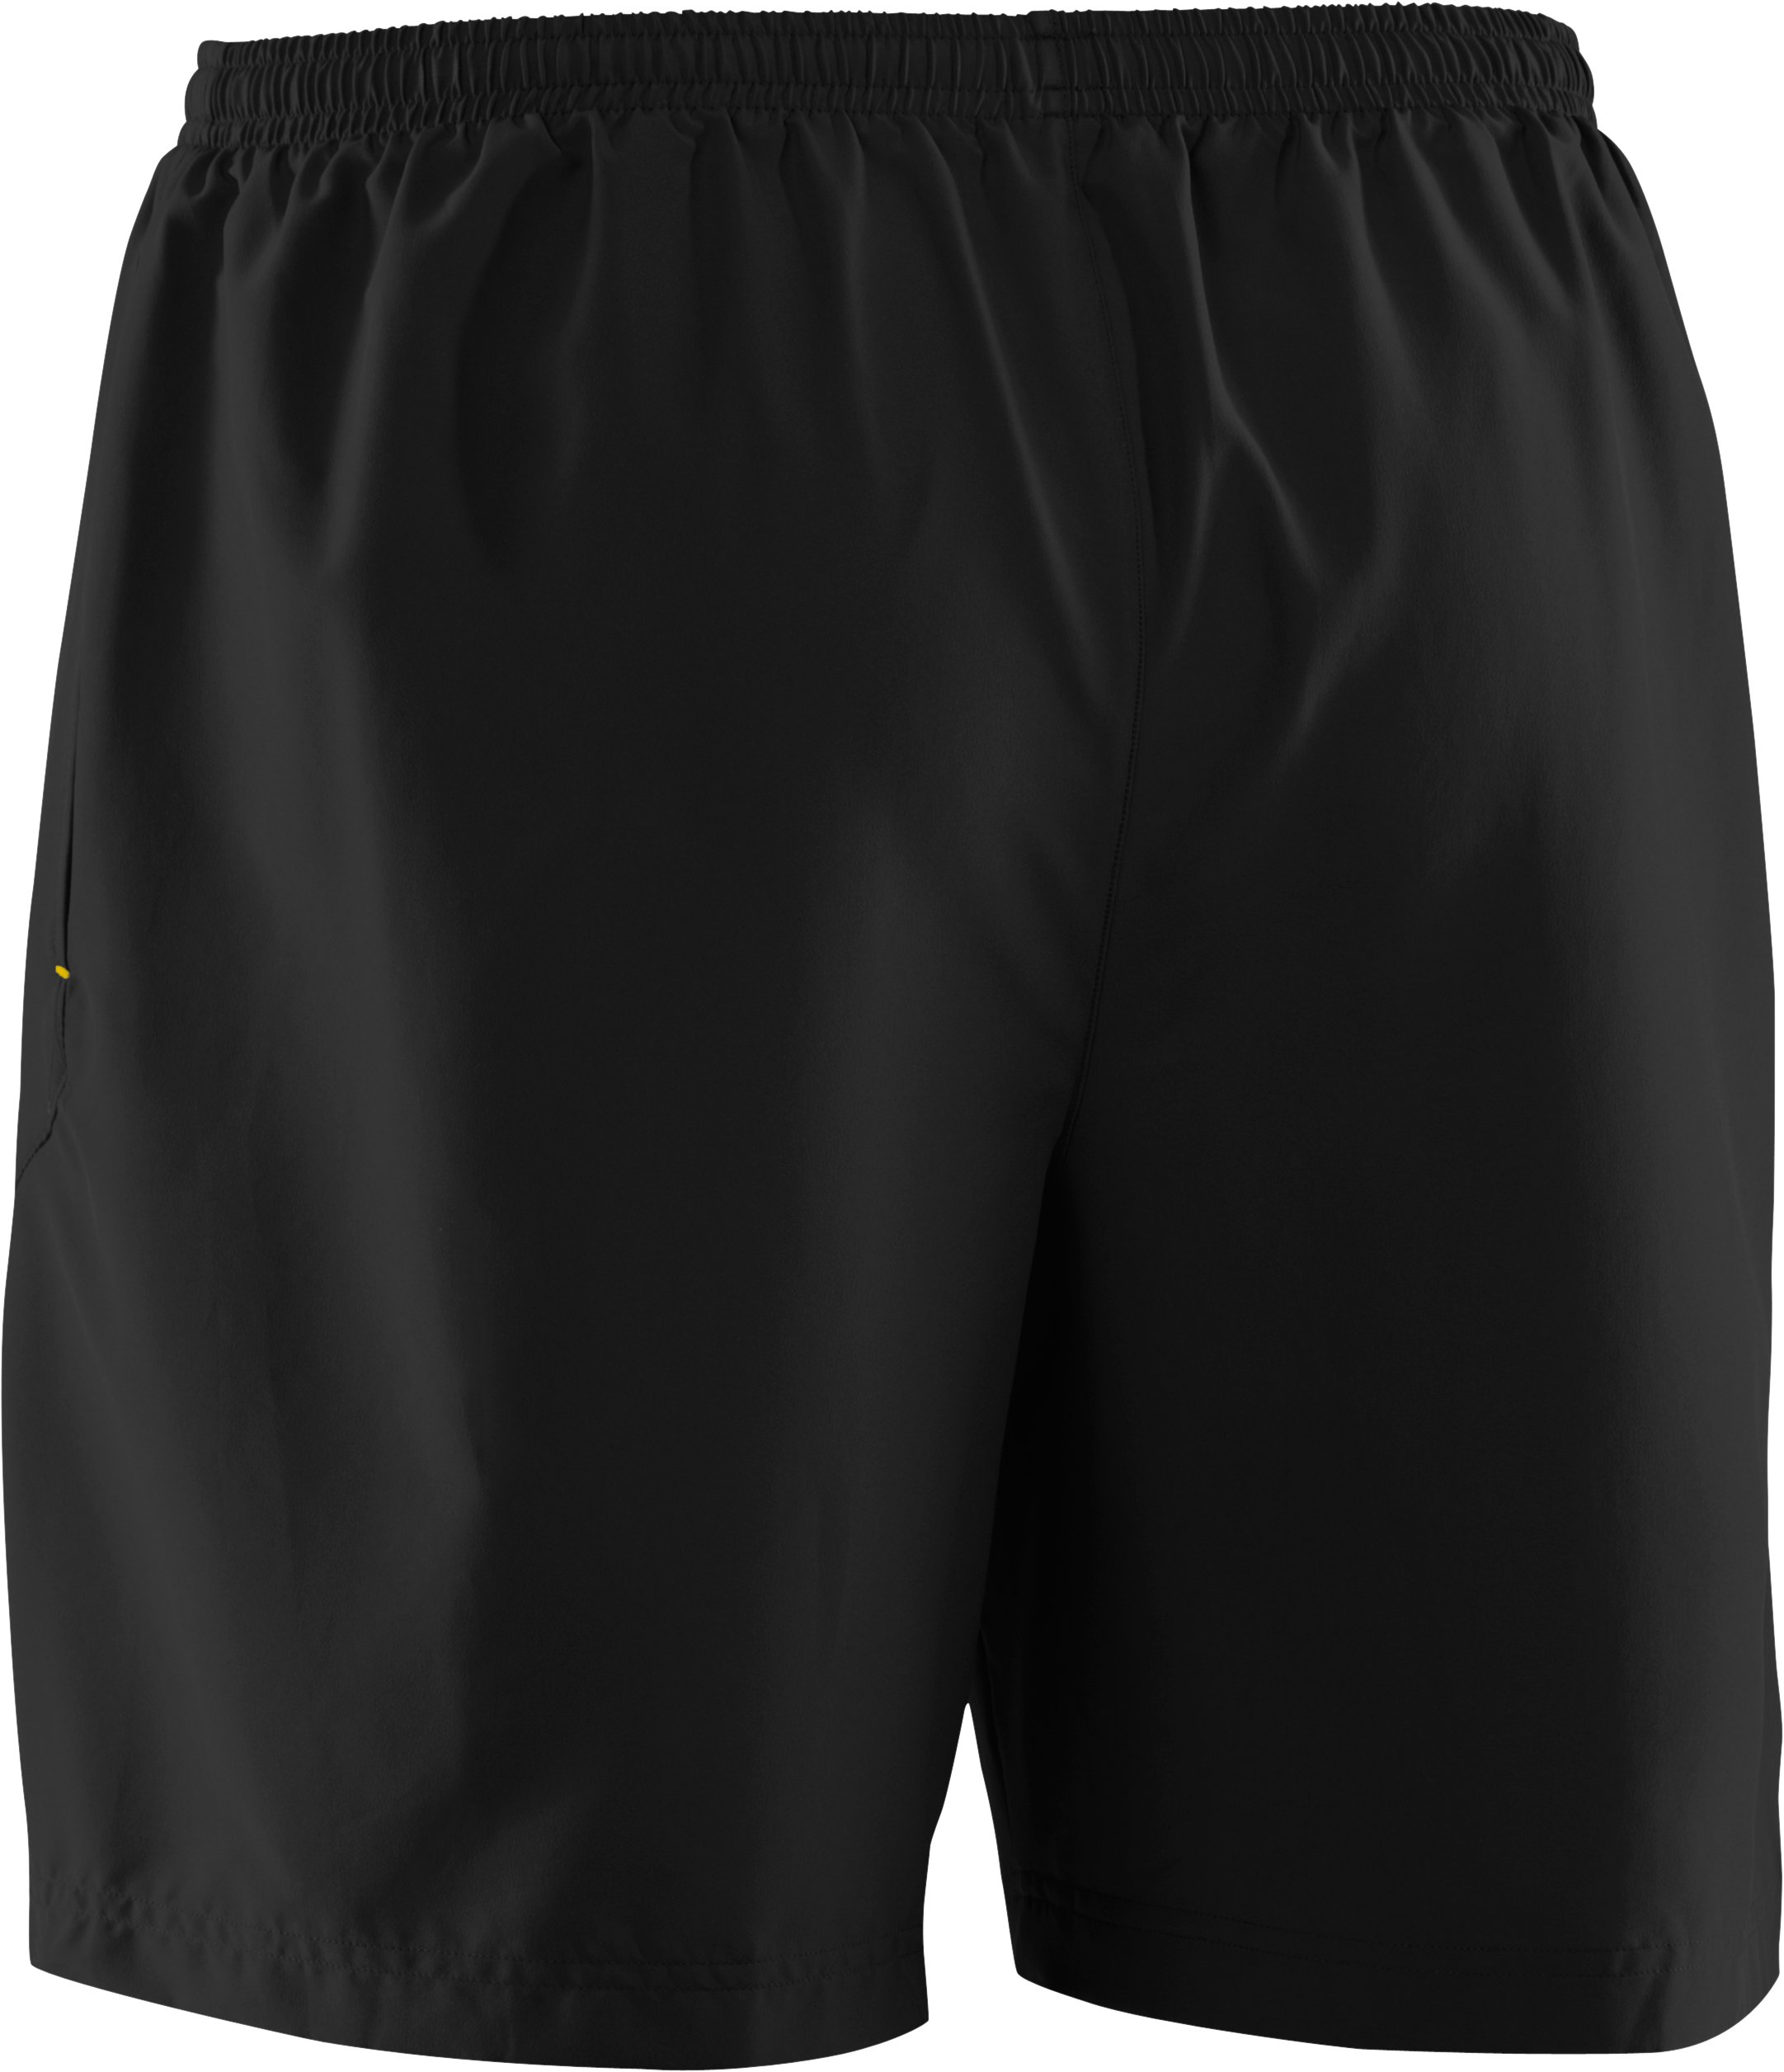 "Men's UA Escape 7"" Solid Run Shorts, Black"